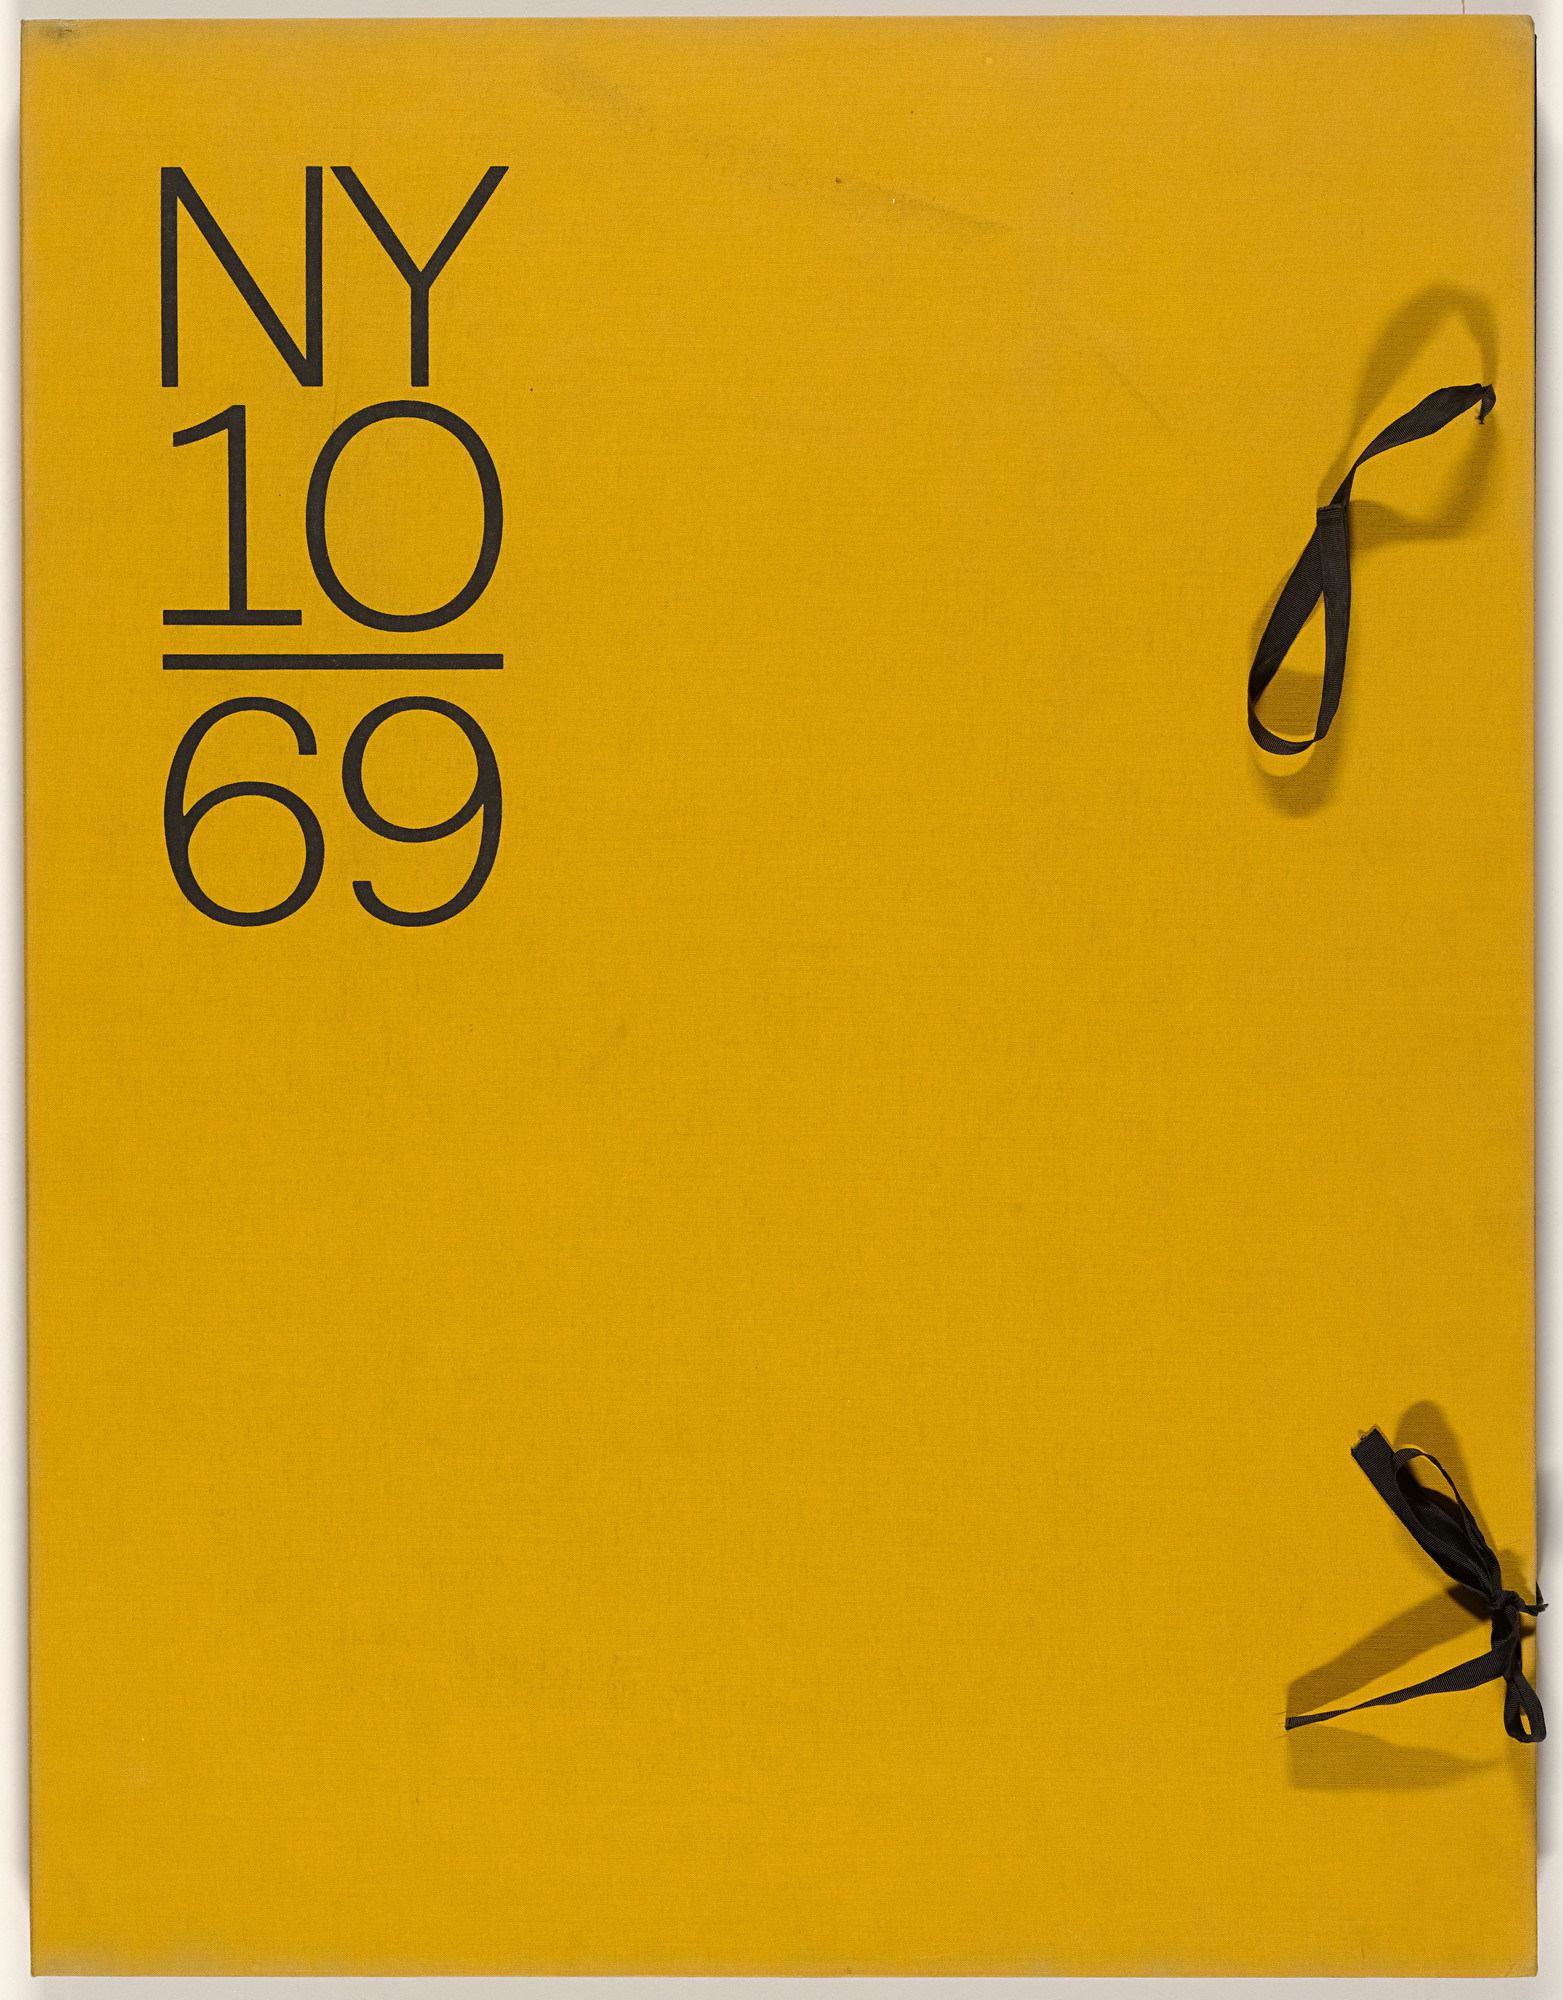 Various Artists, Peter Young, Lawrence Stafford, Kenneth Showell, William Pettet, Brice Marden, Lee Lozano, Ronnie Landfield, David Diao, Alan Cote, Alan Shields. New York l0/69. 1968-69, published 1969